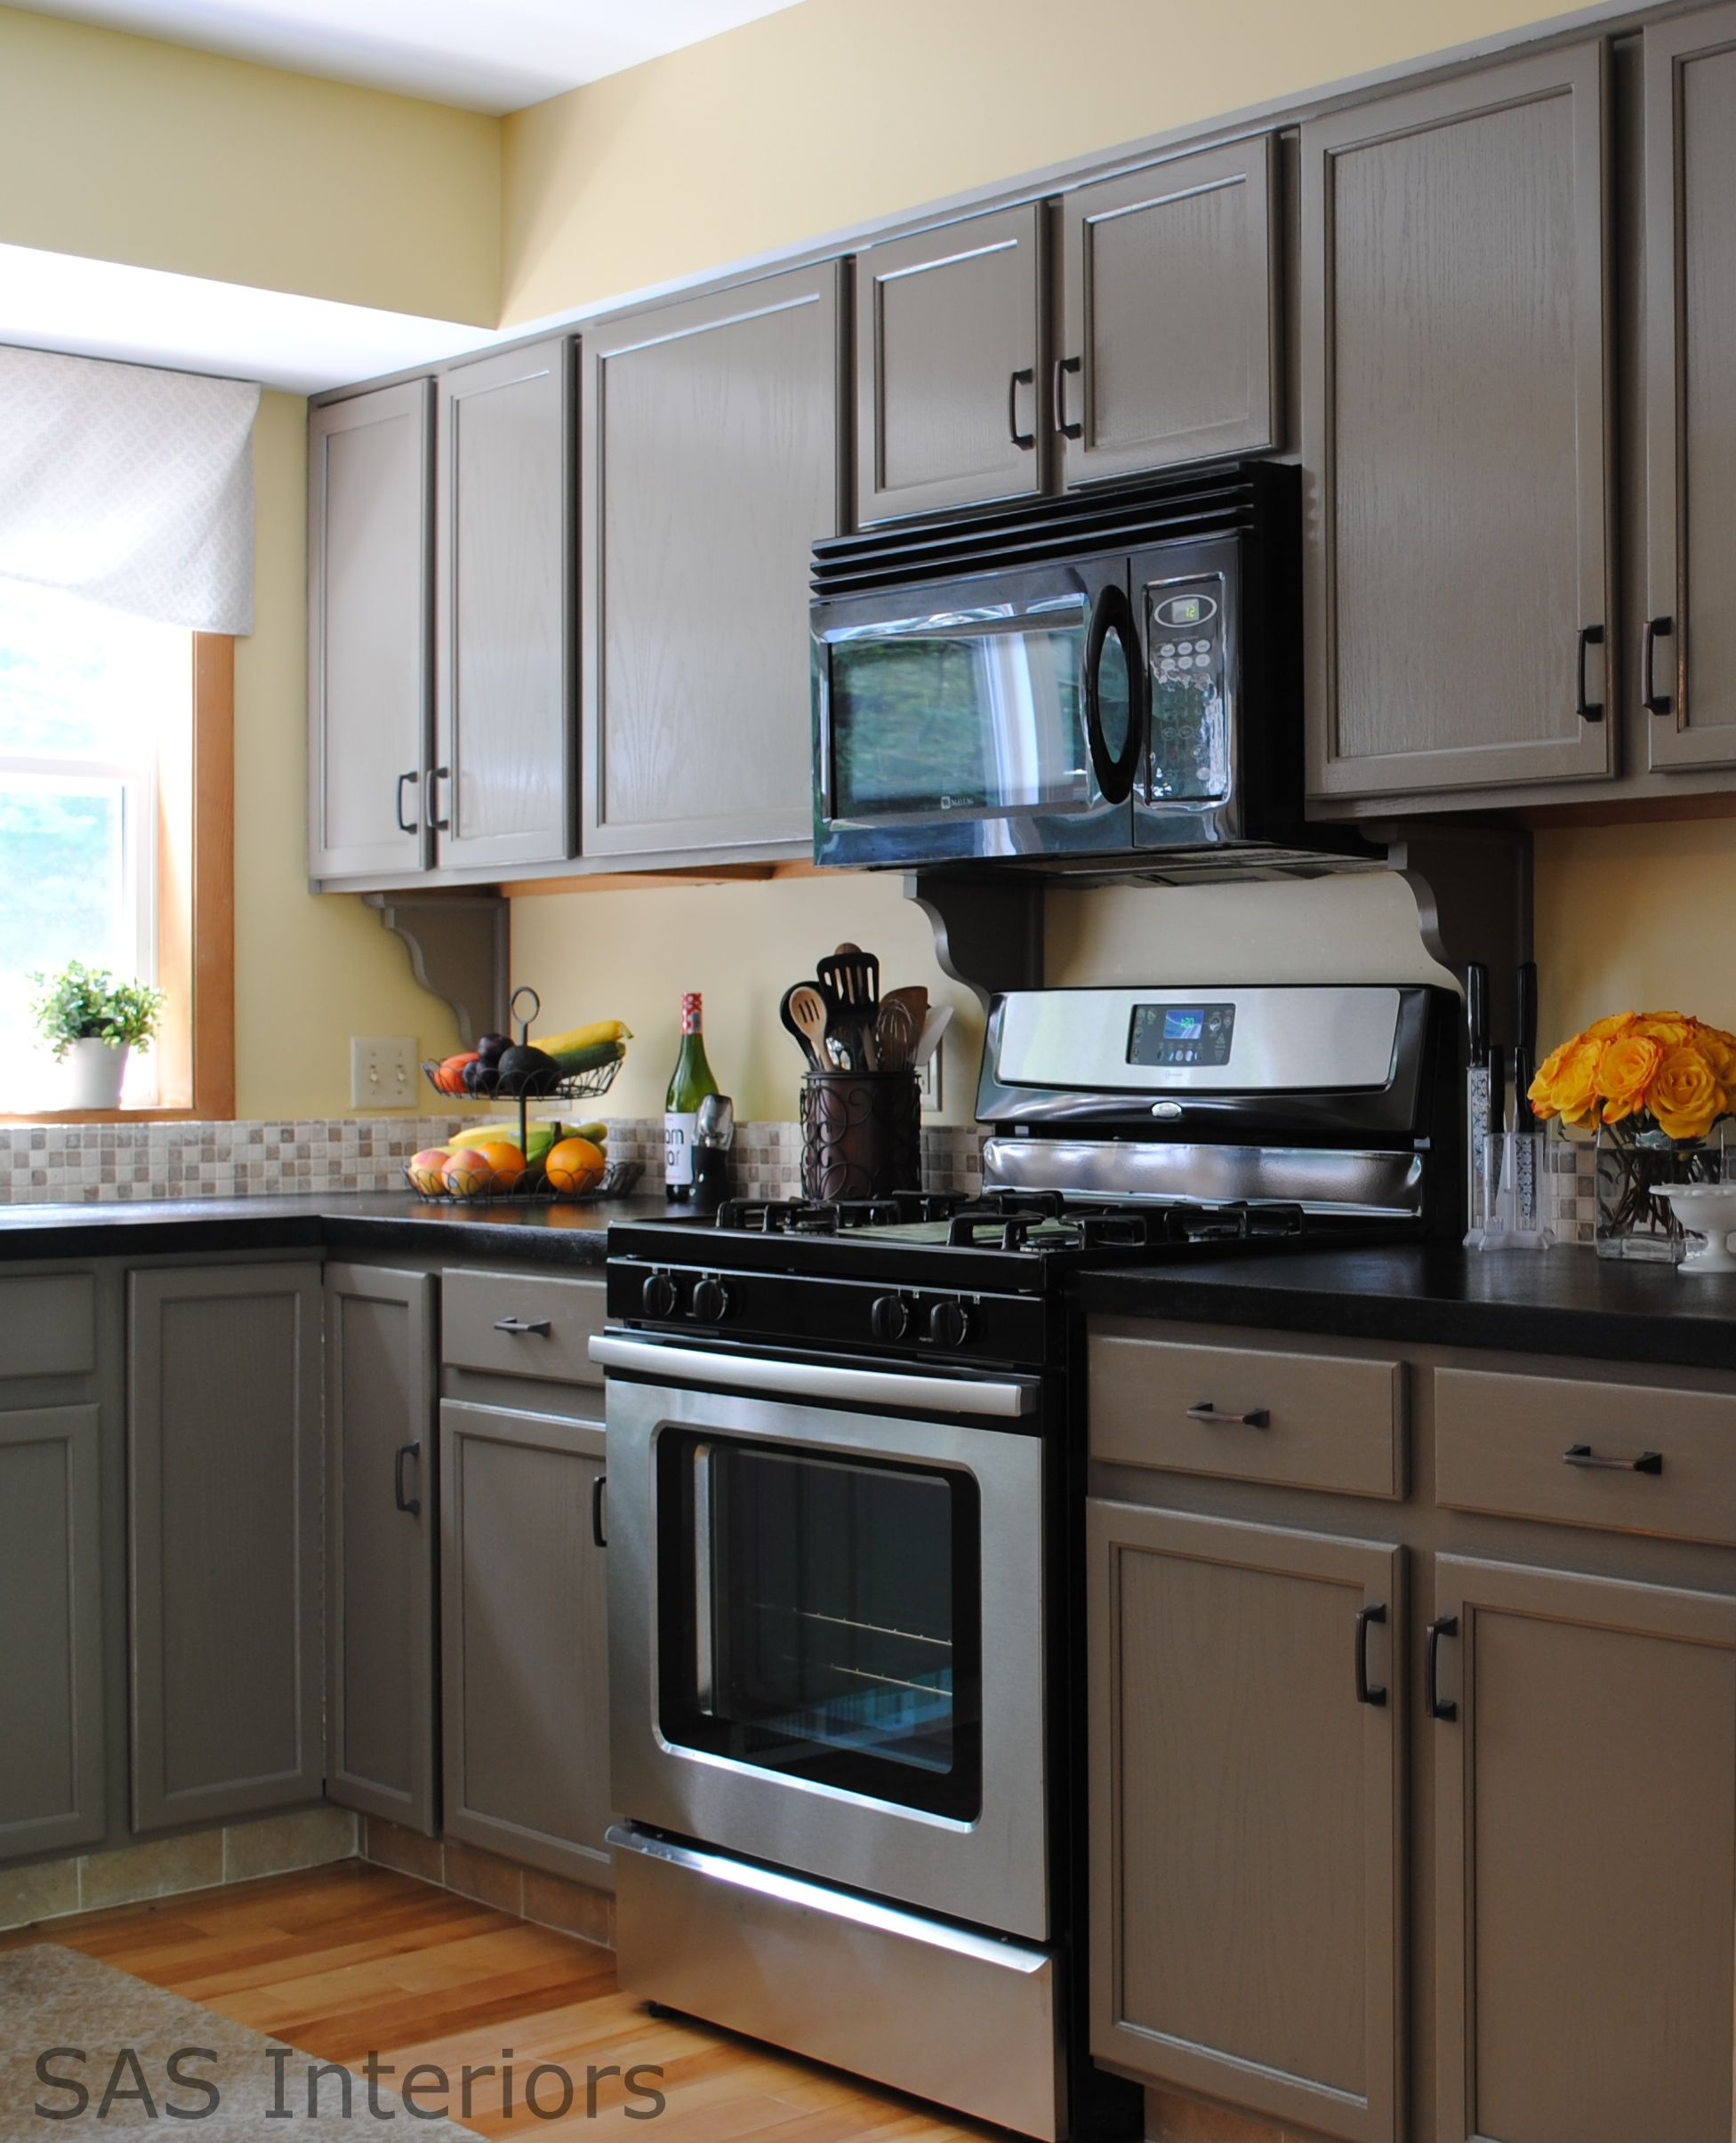 A Complete Do-it-yourself Kitchen Makeover Using Benjamin